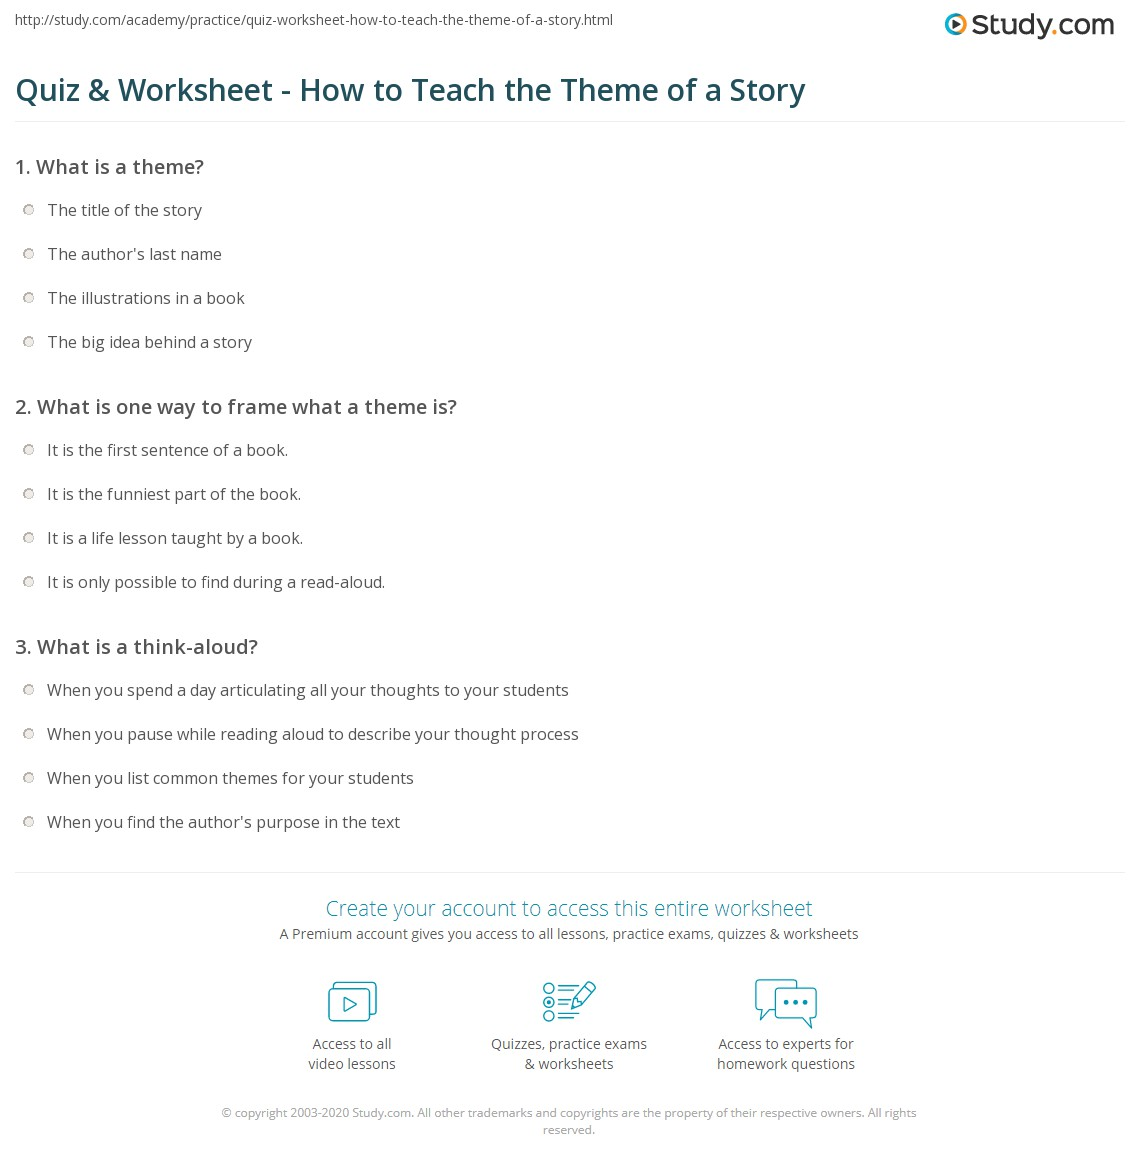 Quiz Worksheet How To Teach The Theme Of A Story